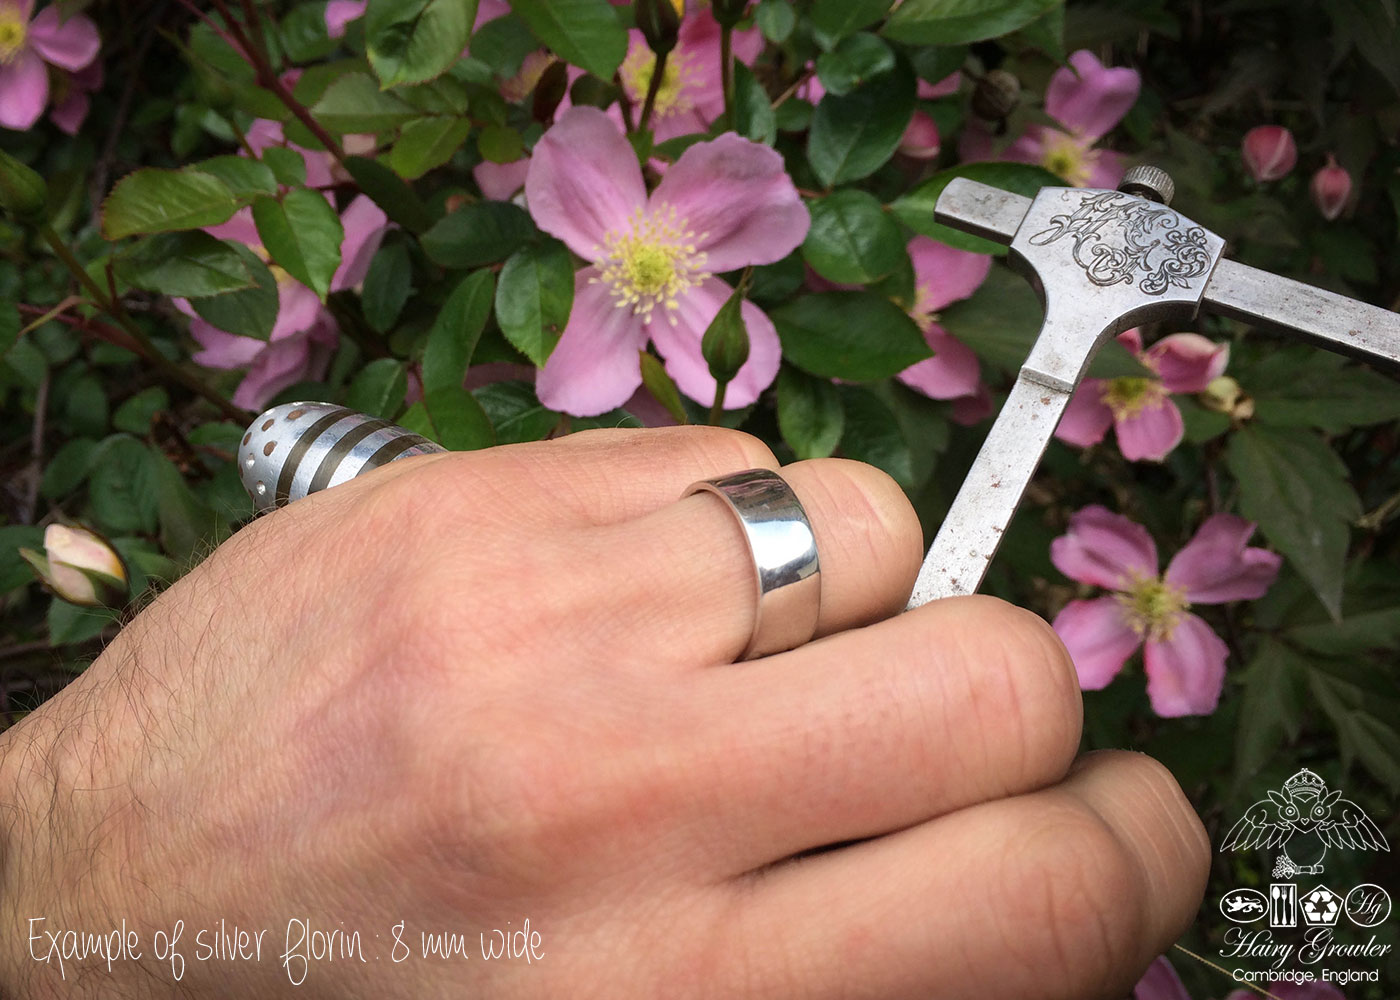 Handcrafted and recycled silver coin wedding rings